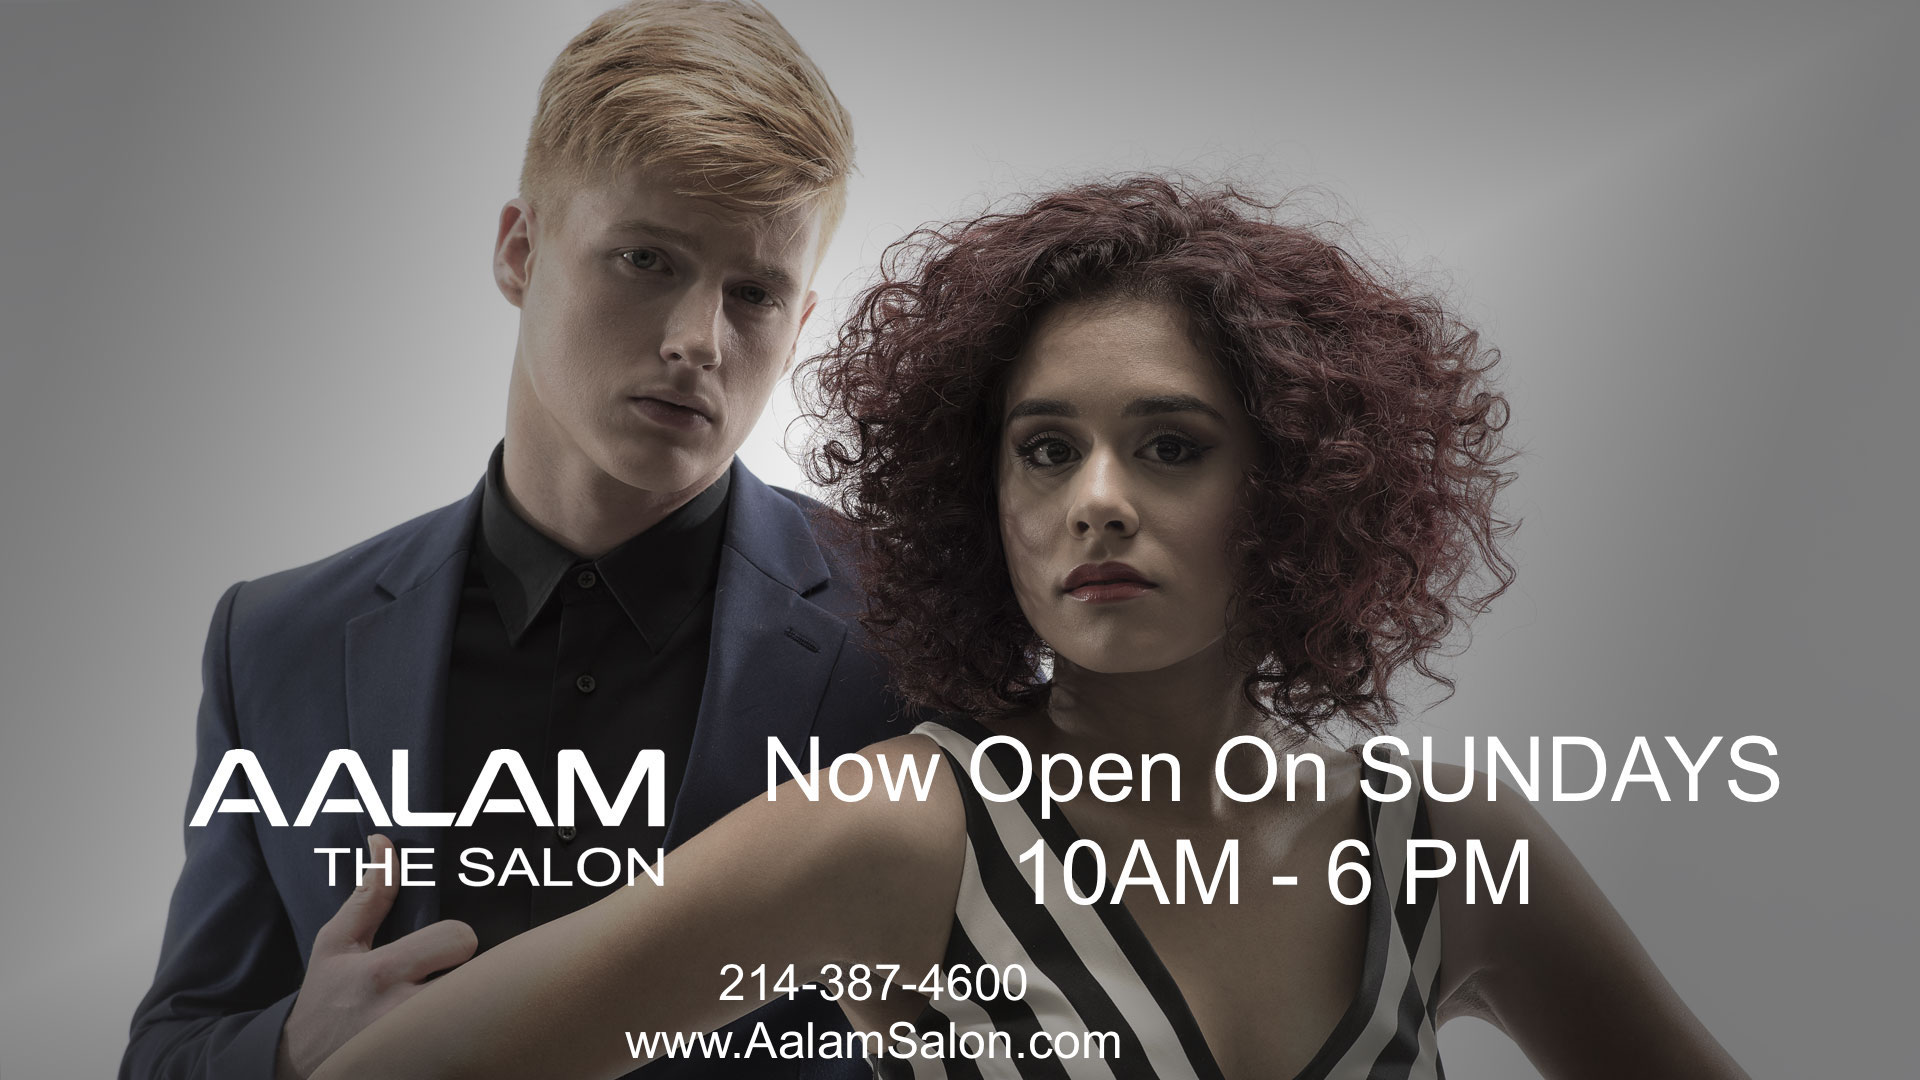 places to get a haircut on sunday best haircut salons for me hair places open on 3026